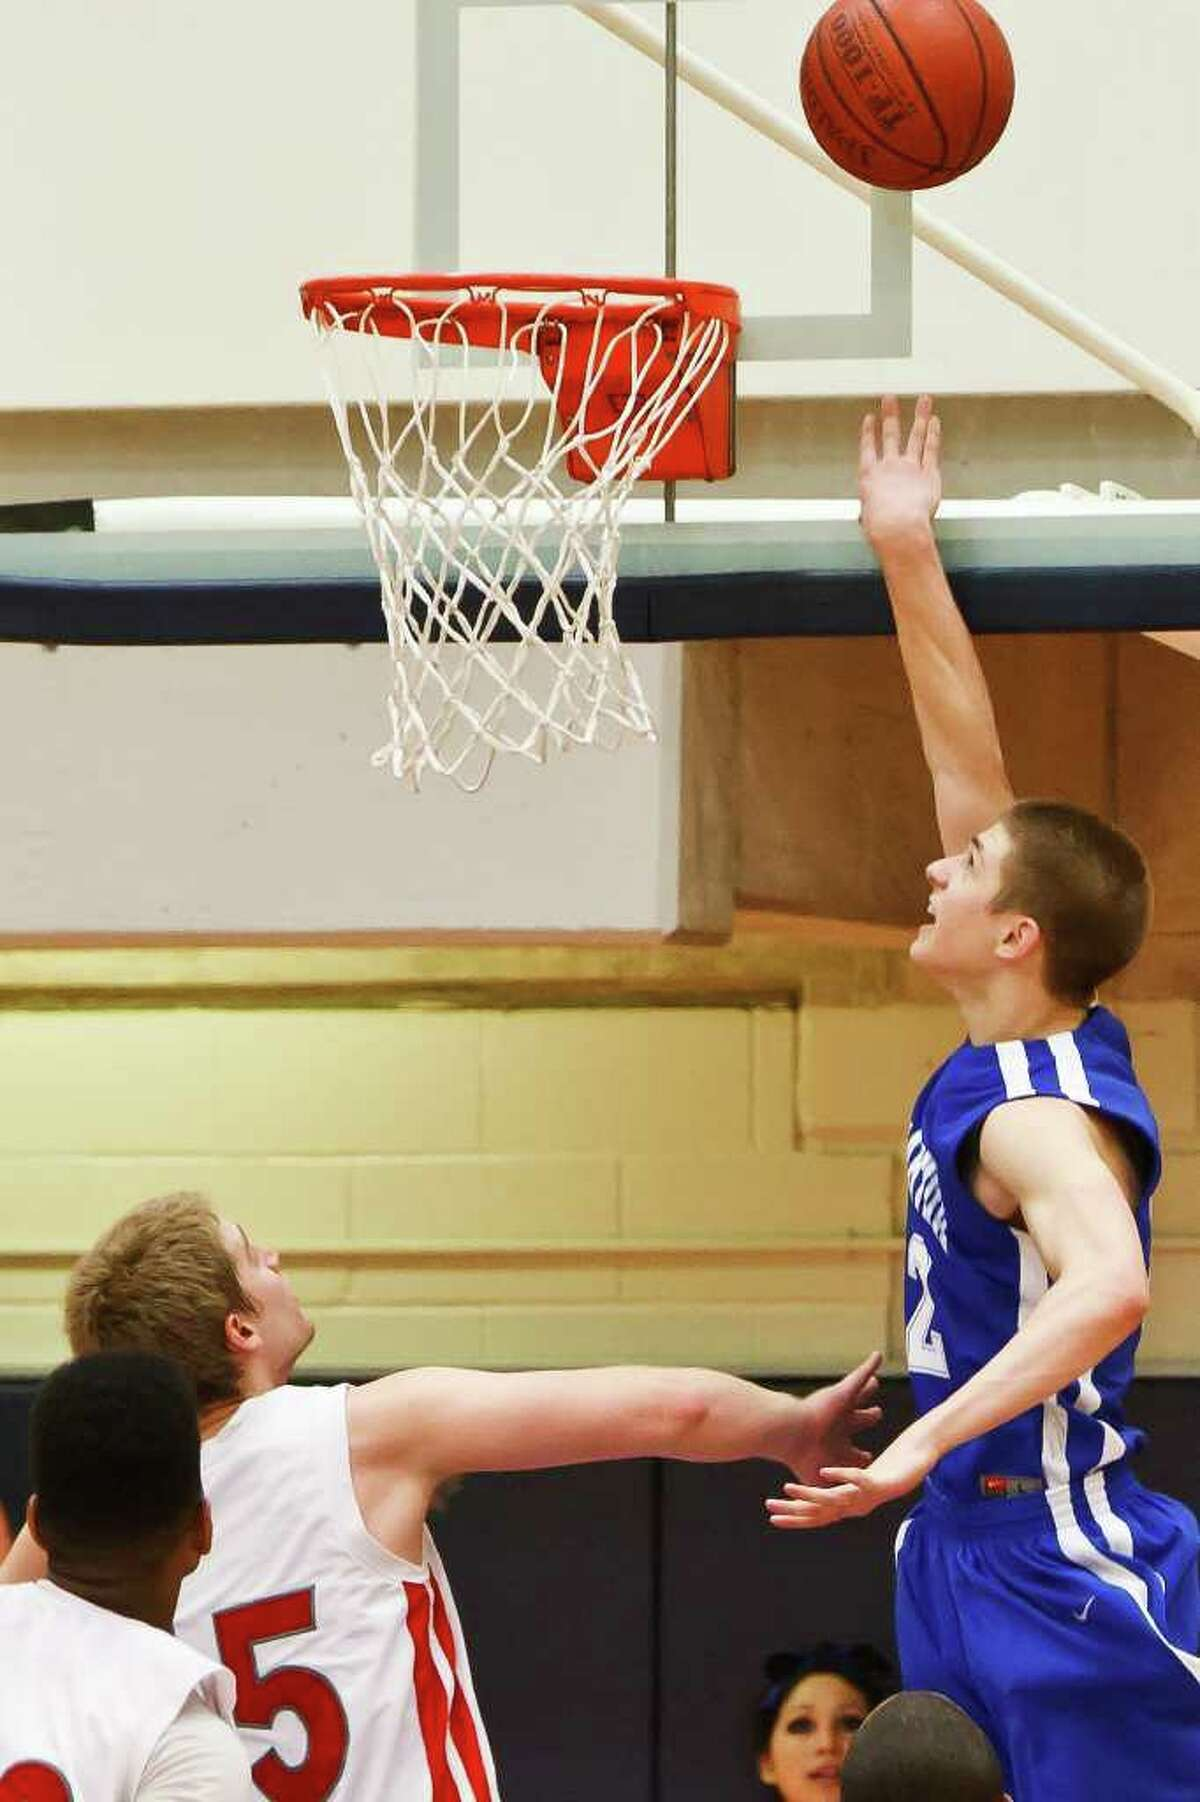 MacArthur's Matt Gramling (right) puts up a layup with 4.6 seconds remaining in overtime that proved to be the game-winning basket in the Brahmas' 56-54 second-round playoff victory over Judson at Paul Taylor Field House on Tuesday, Feb. 22, 2011.